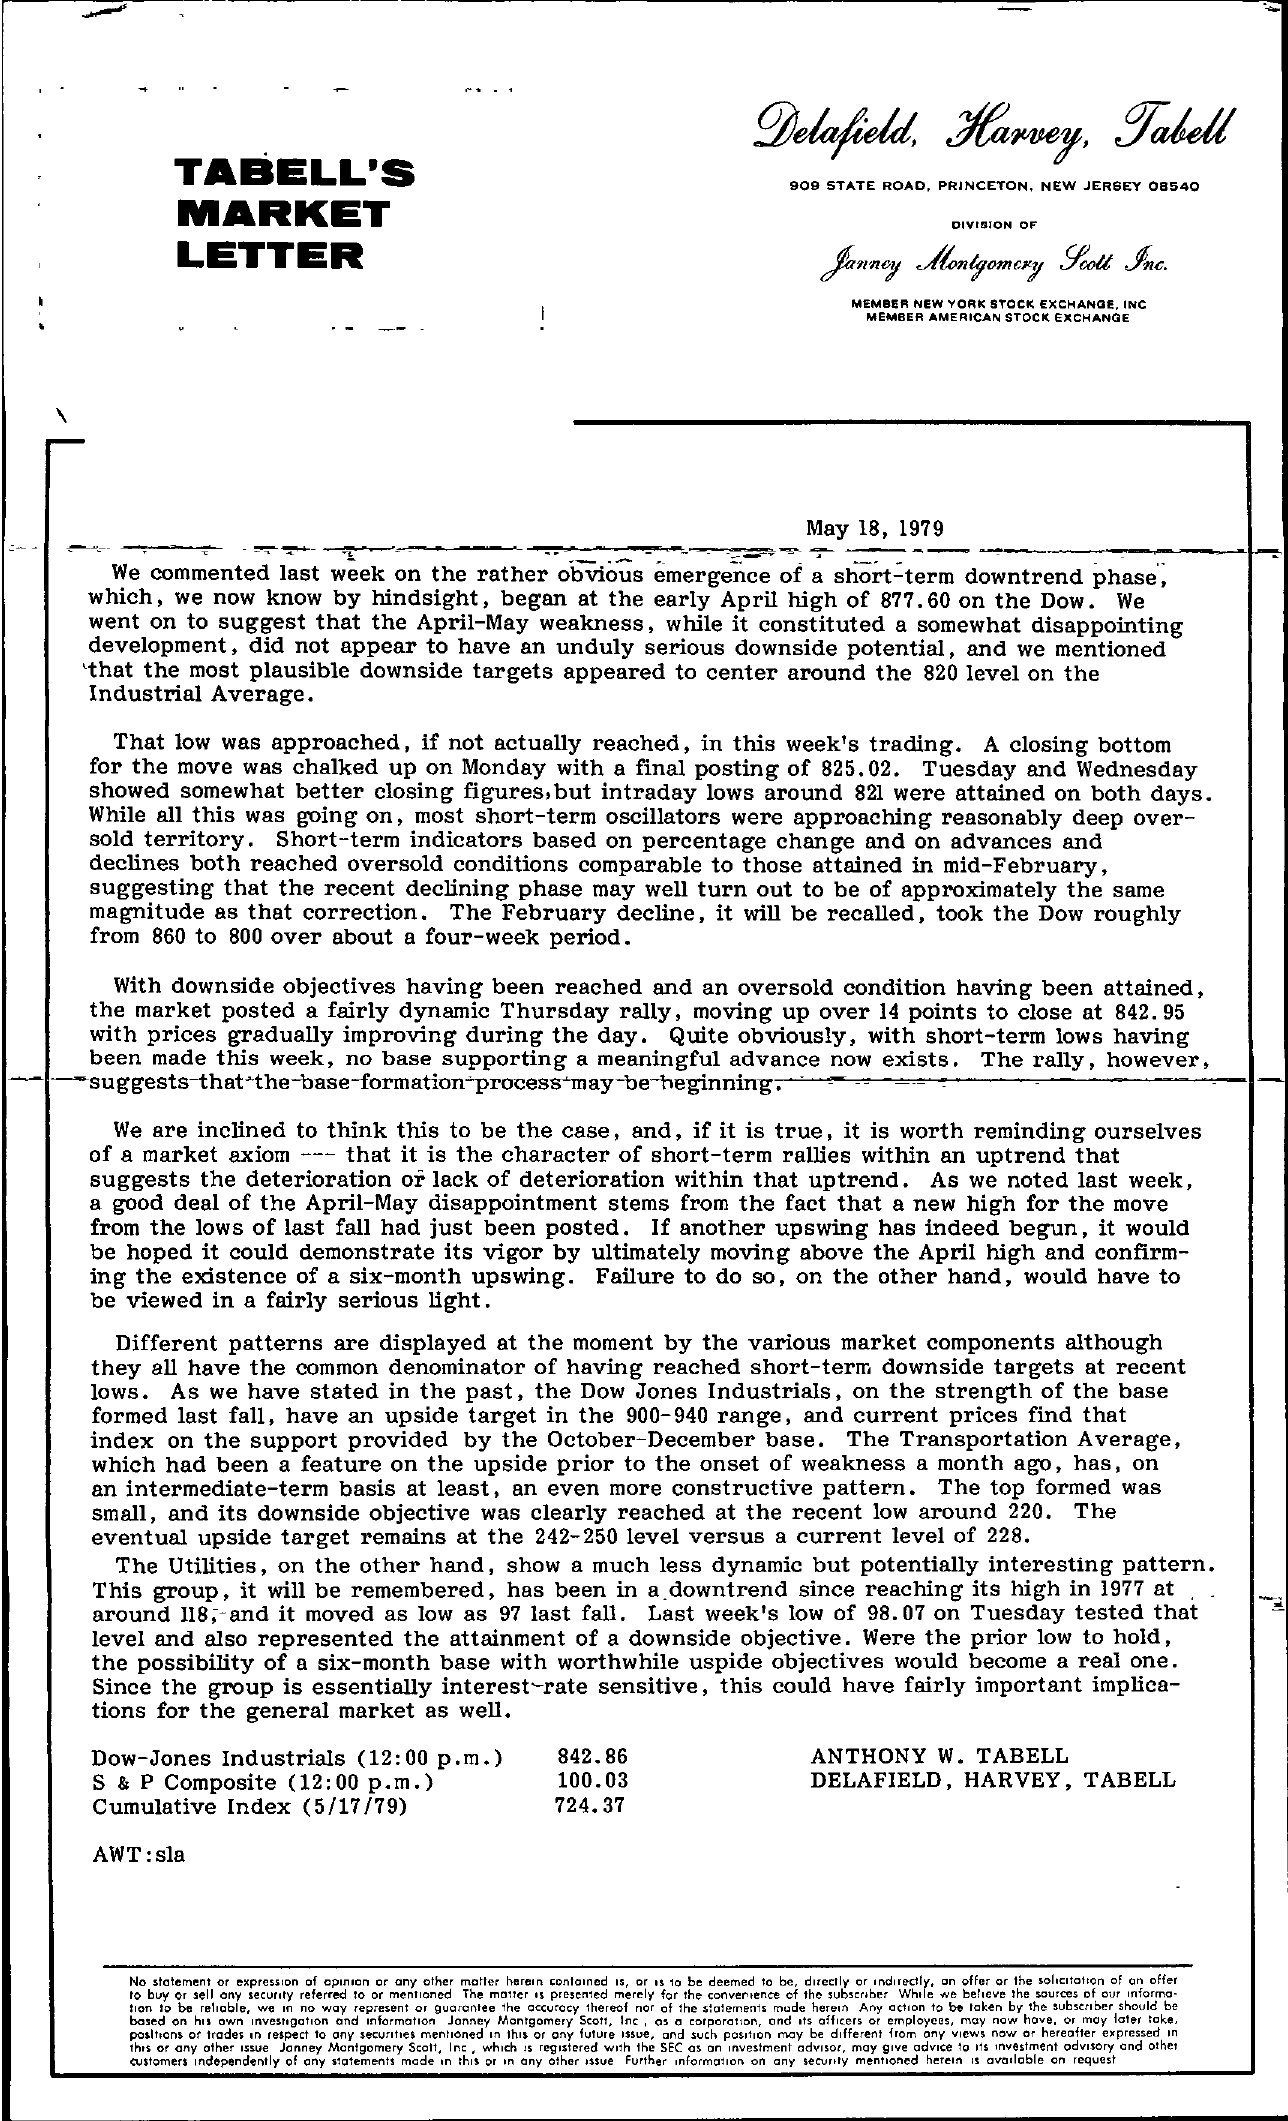 Tabell's Market Letter - May 18, 1979